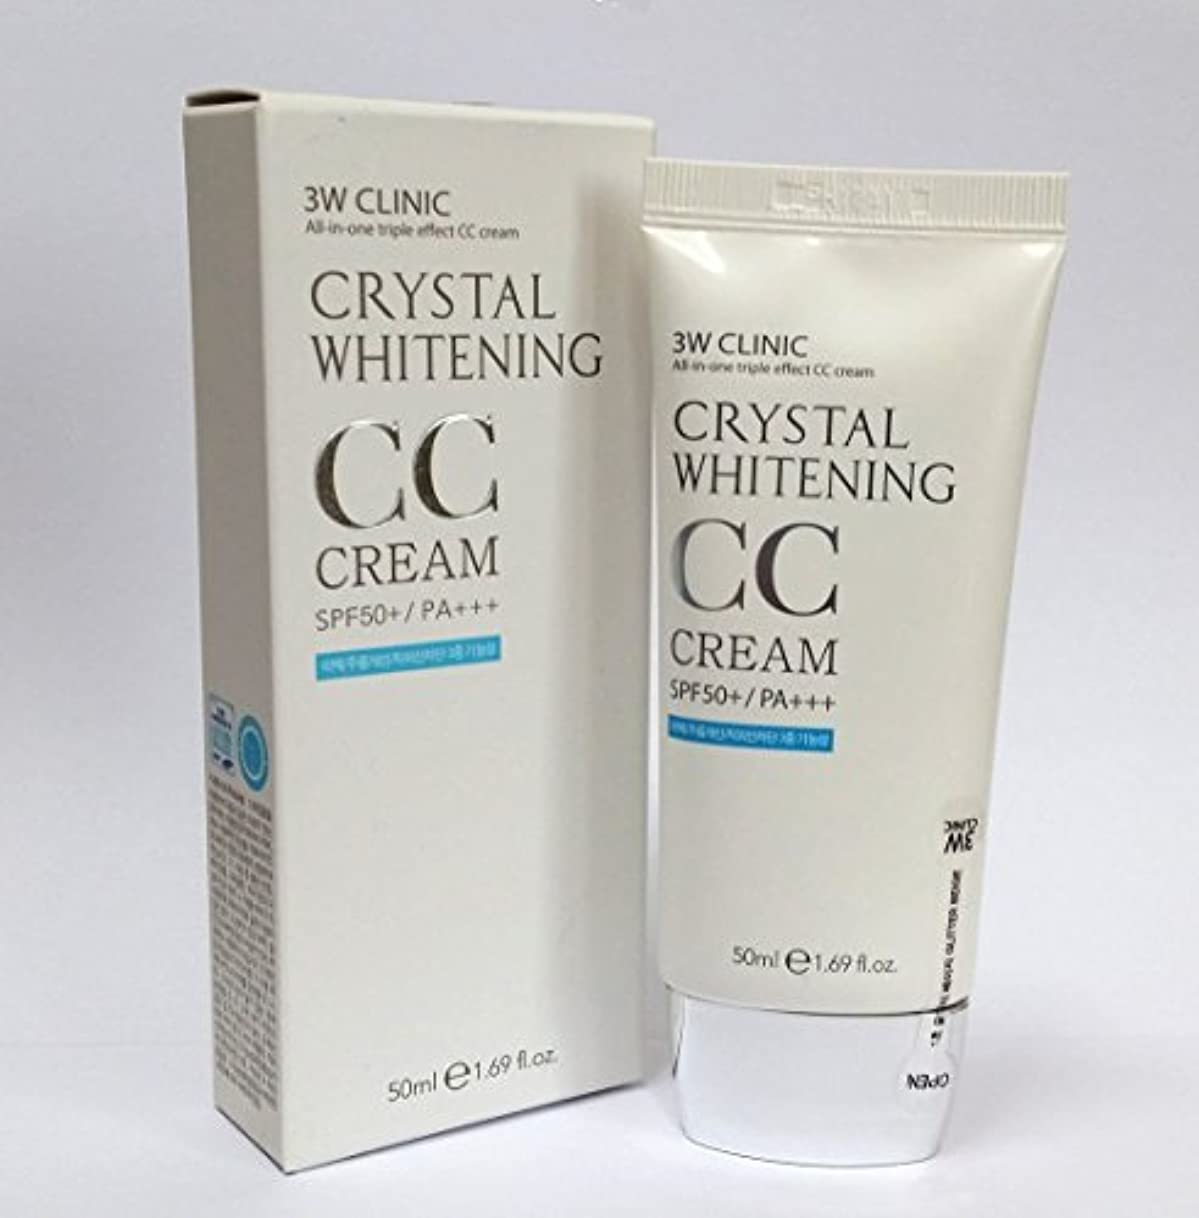 [3W CLINIC] クリスタルホワイトニングCCクリーム50ml SPF50 PA +++ / #02 Natural Beige / Crystal Whitening CC Cream 50ml SPF50 PA...